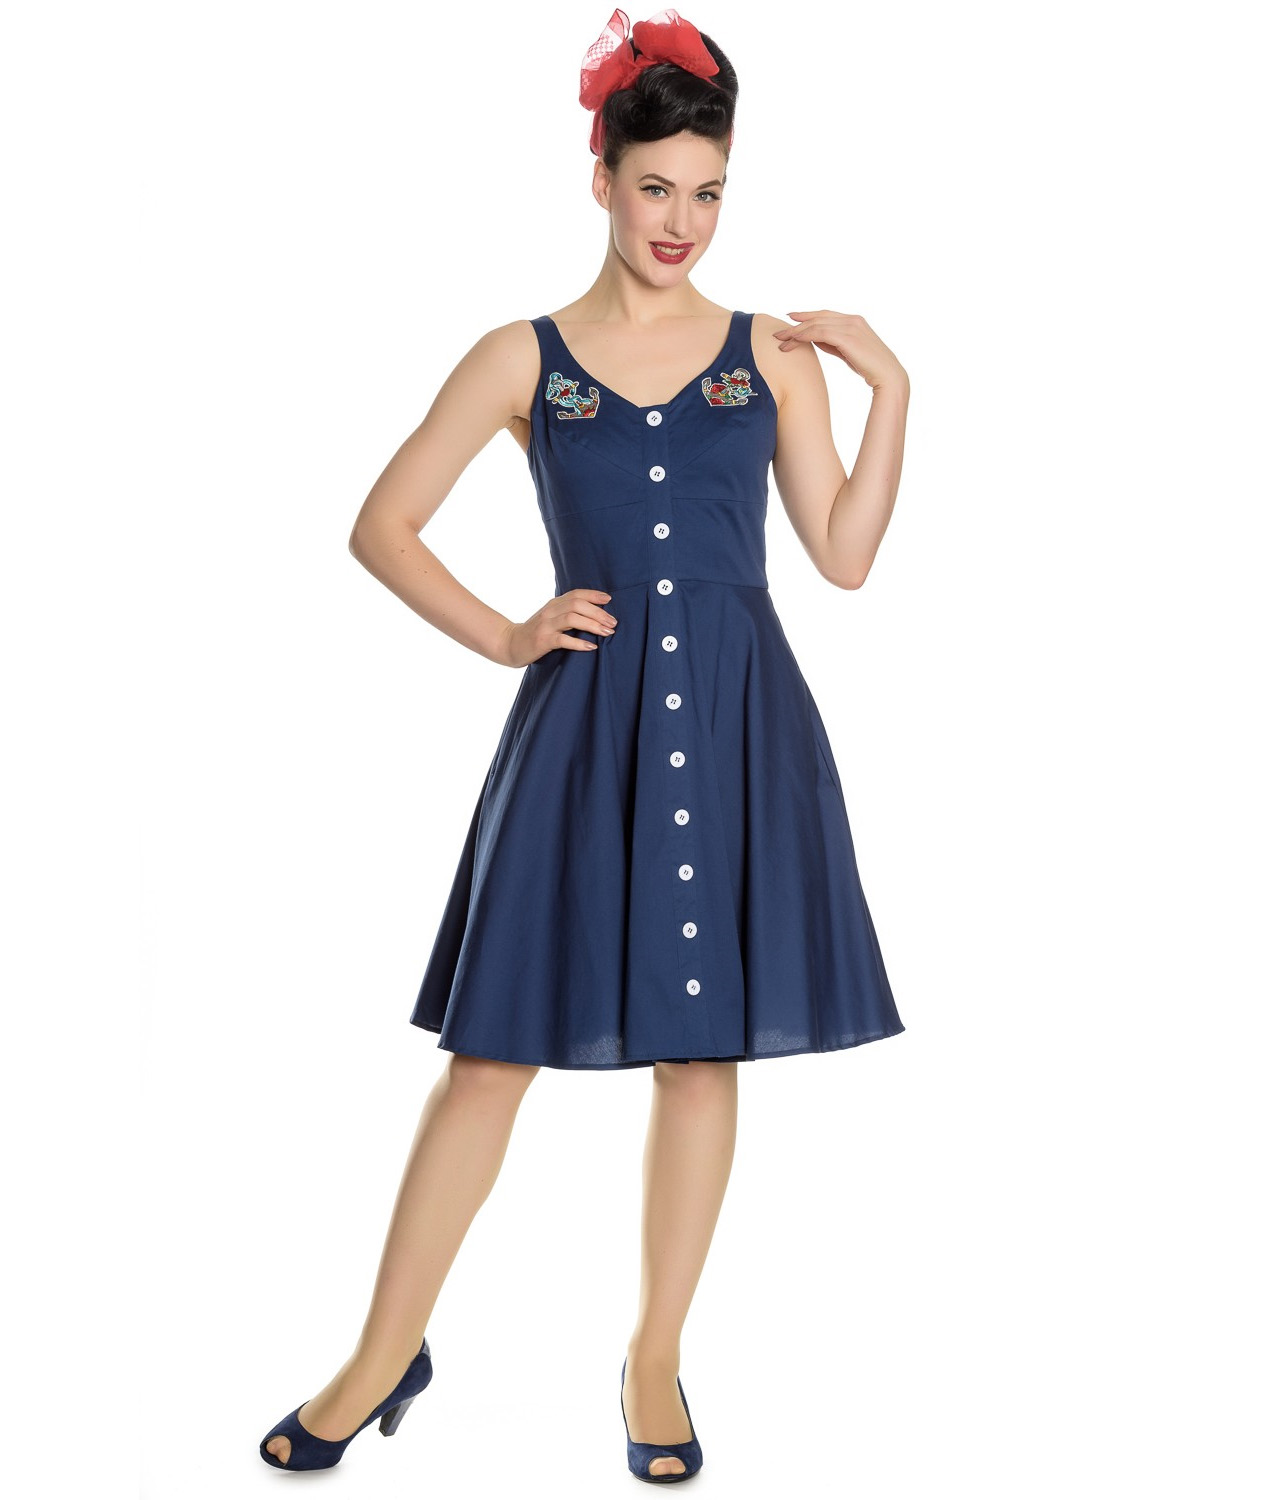 Hell-Bunny-Vintage-50s-Pin-Up-Dress-Navy-Blue-SELA-Nautical-Anchors-All-Sizes thumbnail 11